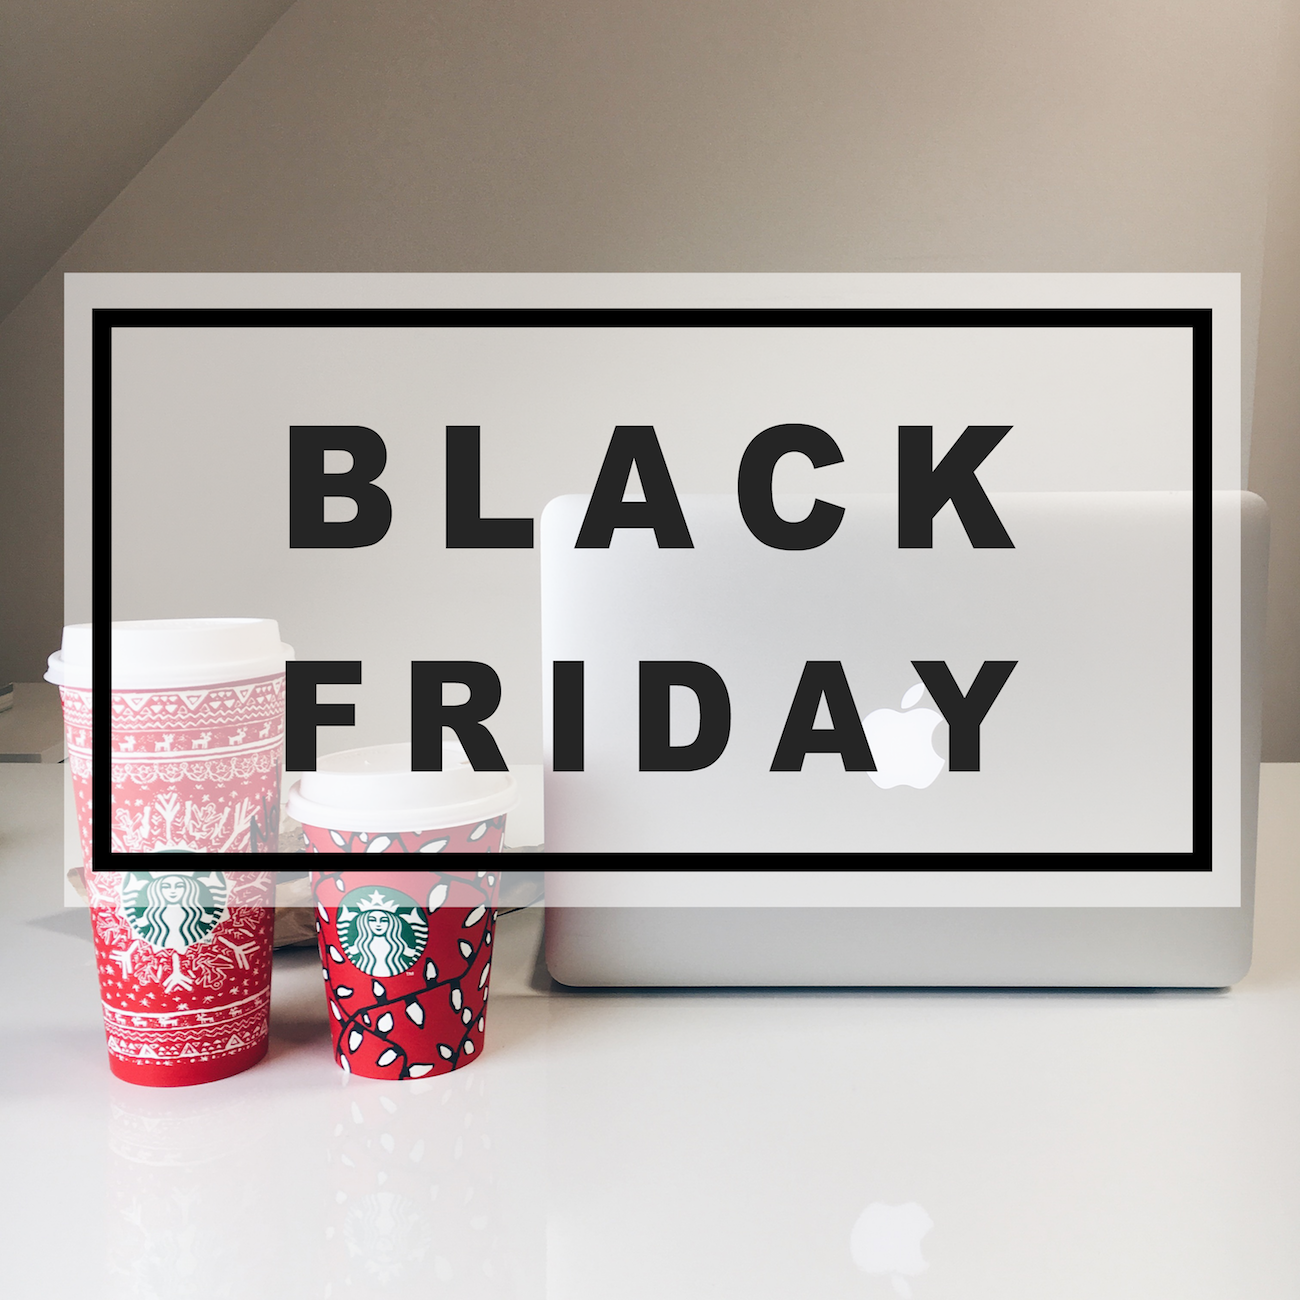 black-friday-nolwenn-blog-nantes-1